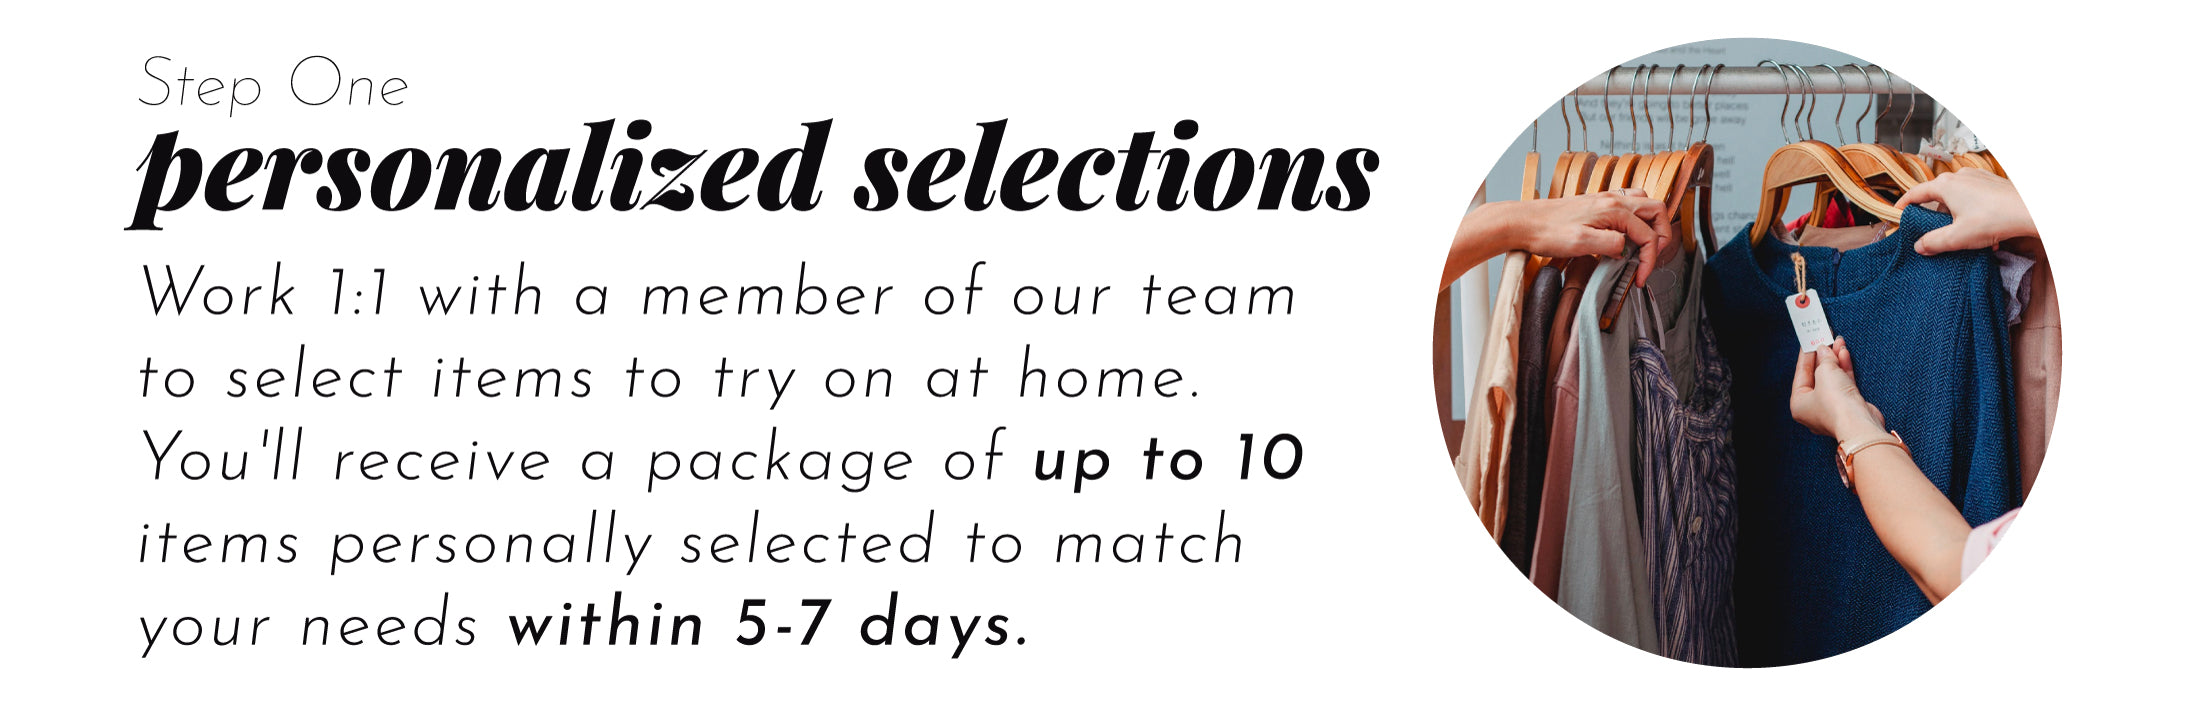 Work 1:1 with a member of our team  to select items to try on at home.  You'll receive a package of up to 10 items personally selected to match  your needs within 5-7 days.